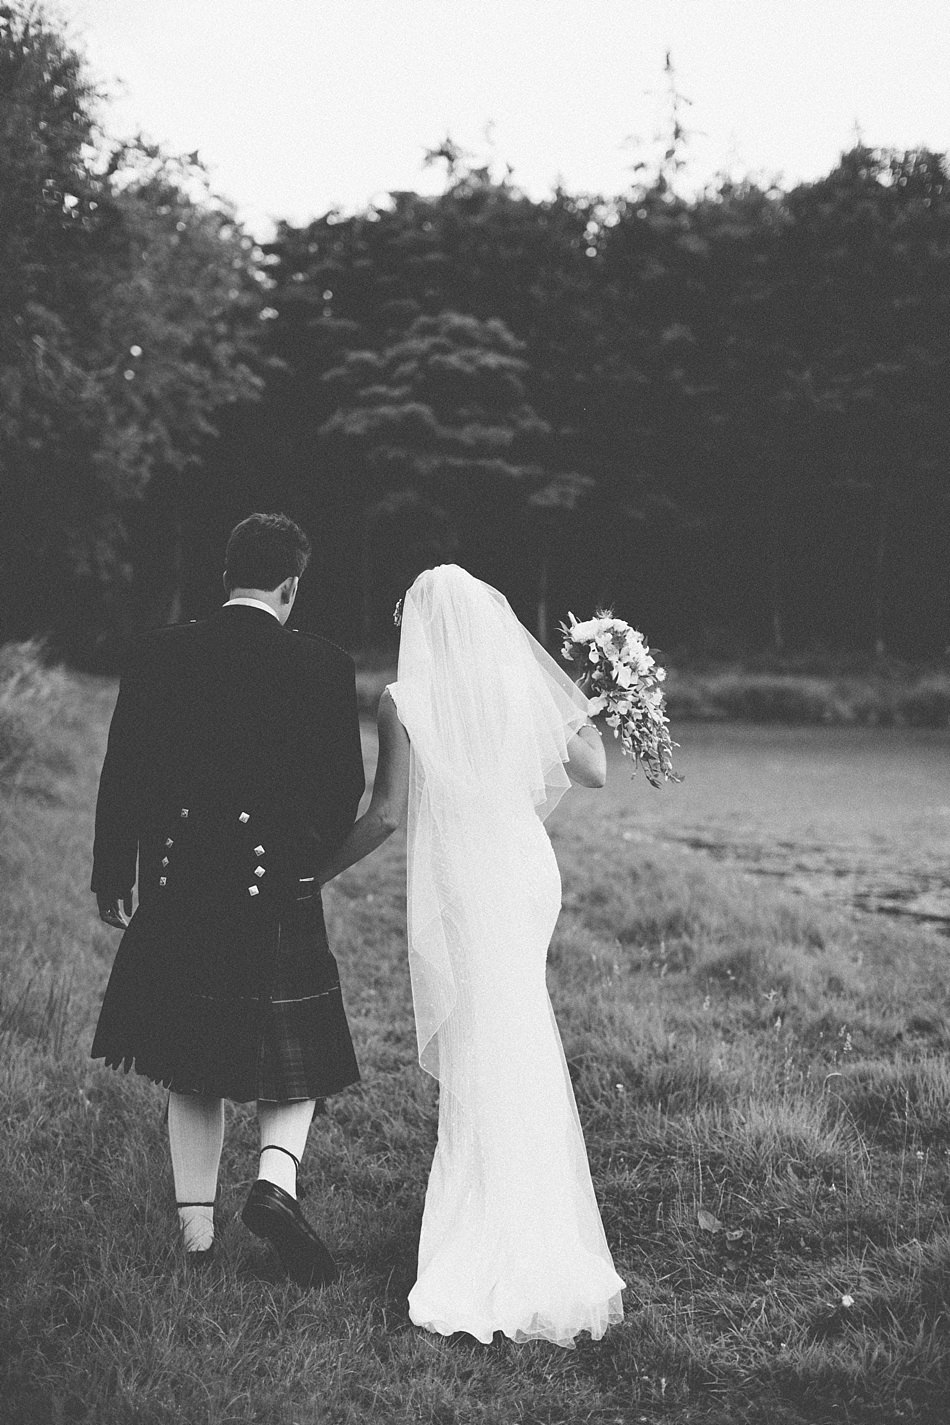 natural fine art wedding photographers scotland 9-3.jpg